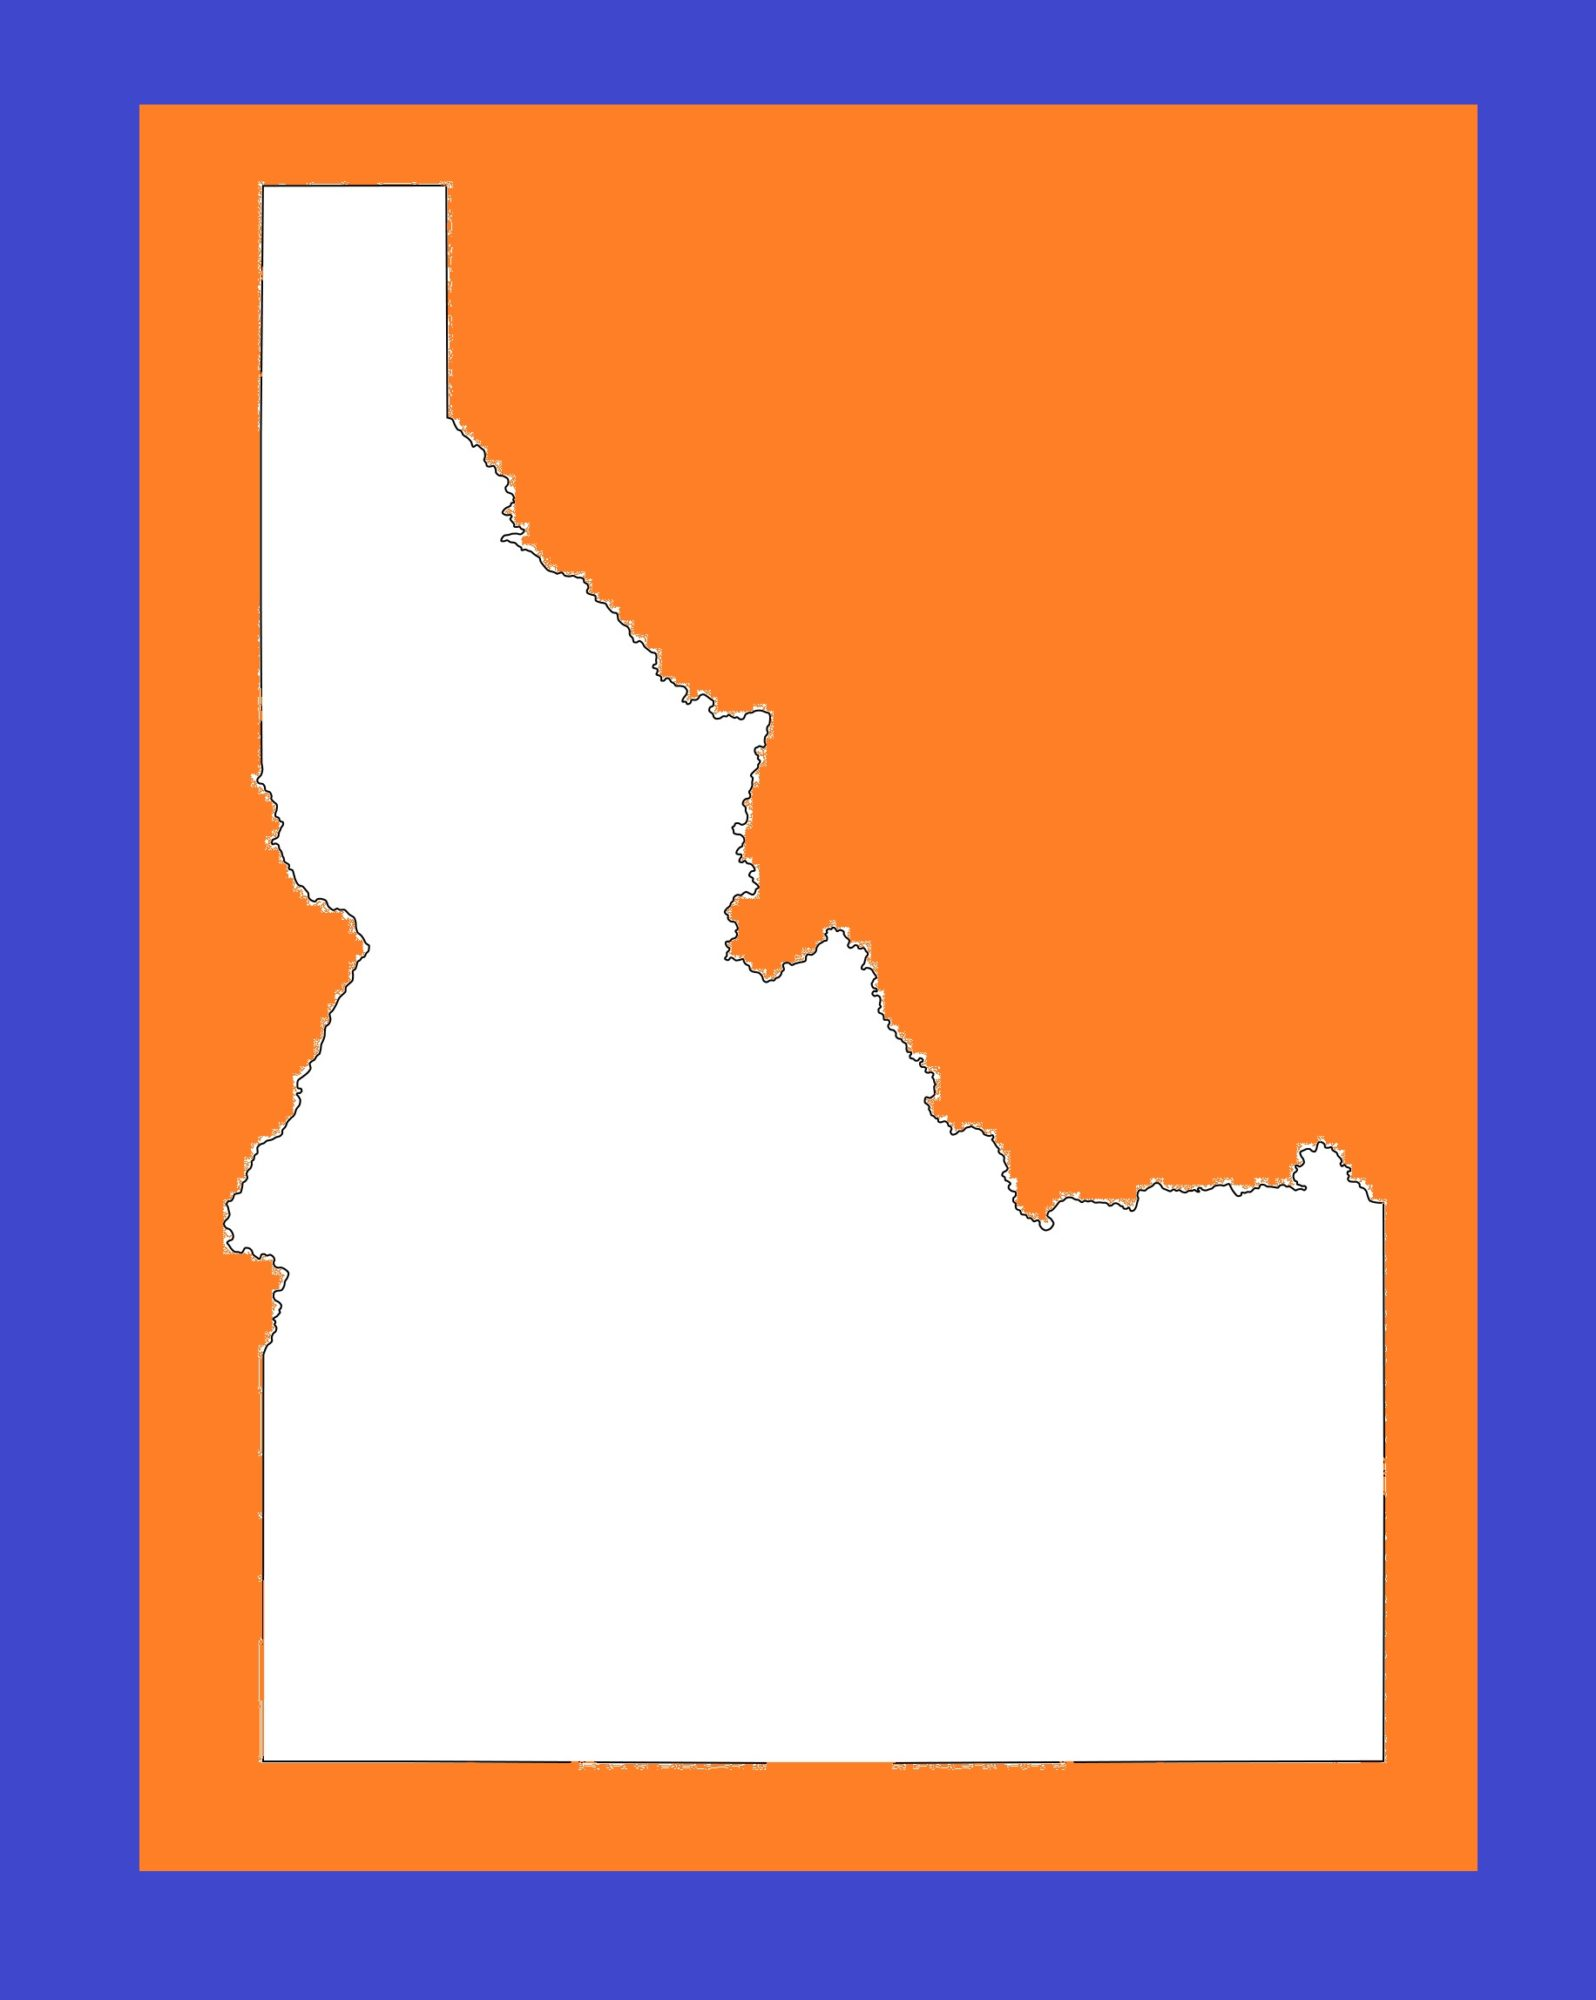 Idaho Blank Outline Map | Large Printable and Standard Map 3